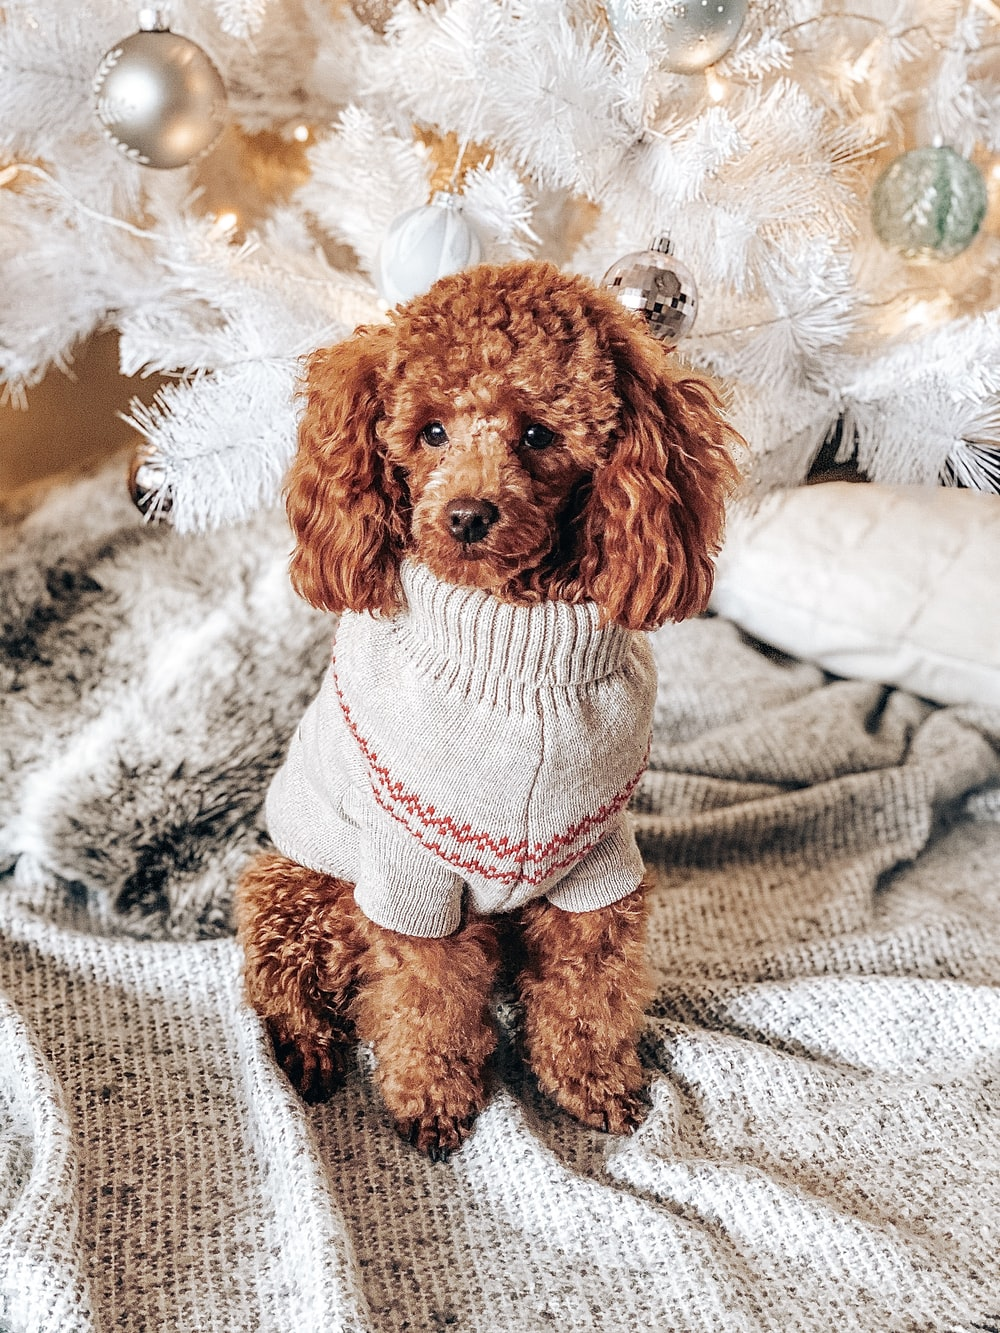 brown toy poodle with white and red costume